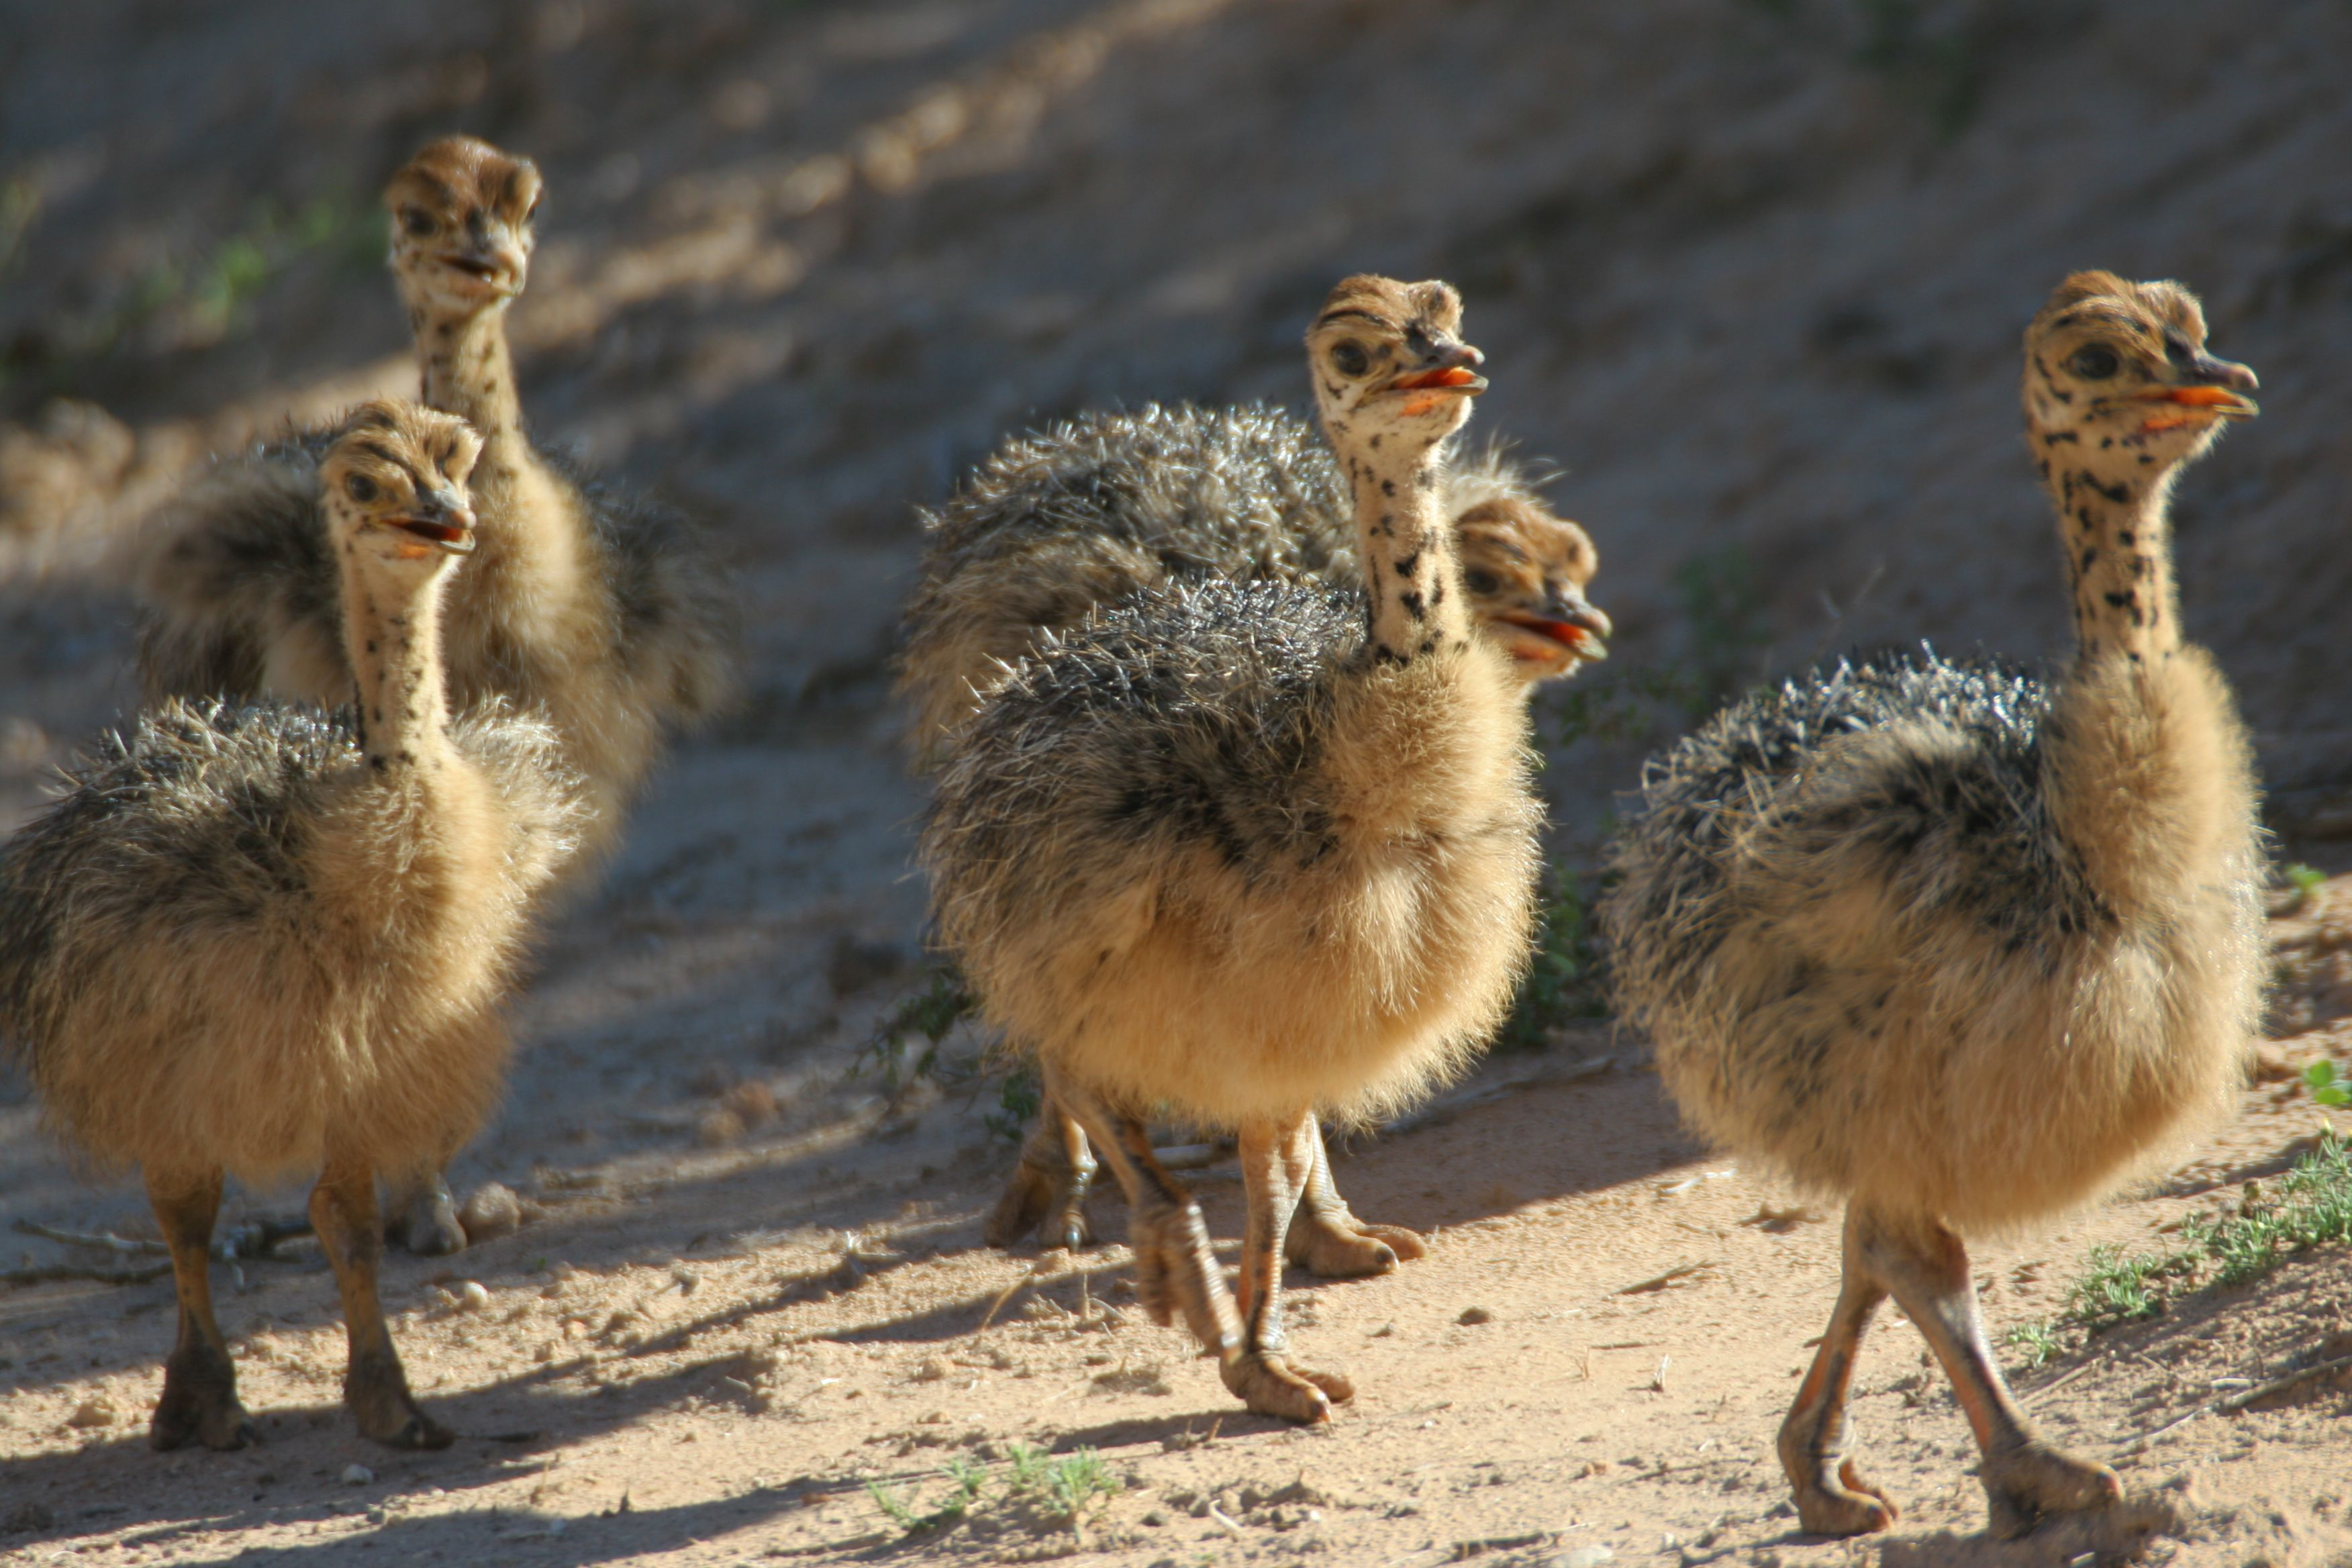 Baby Ostriches | Baby ostrich, Ostriches, House property